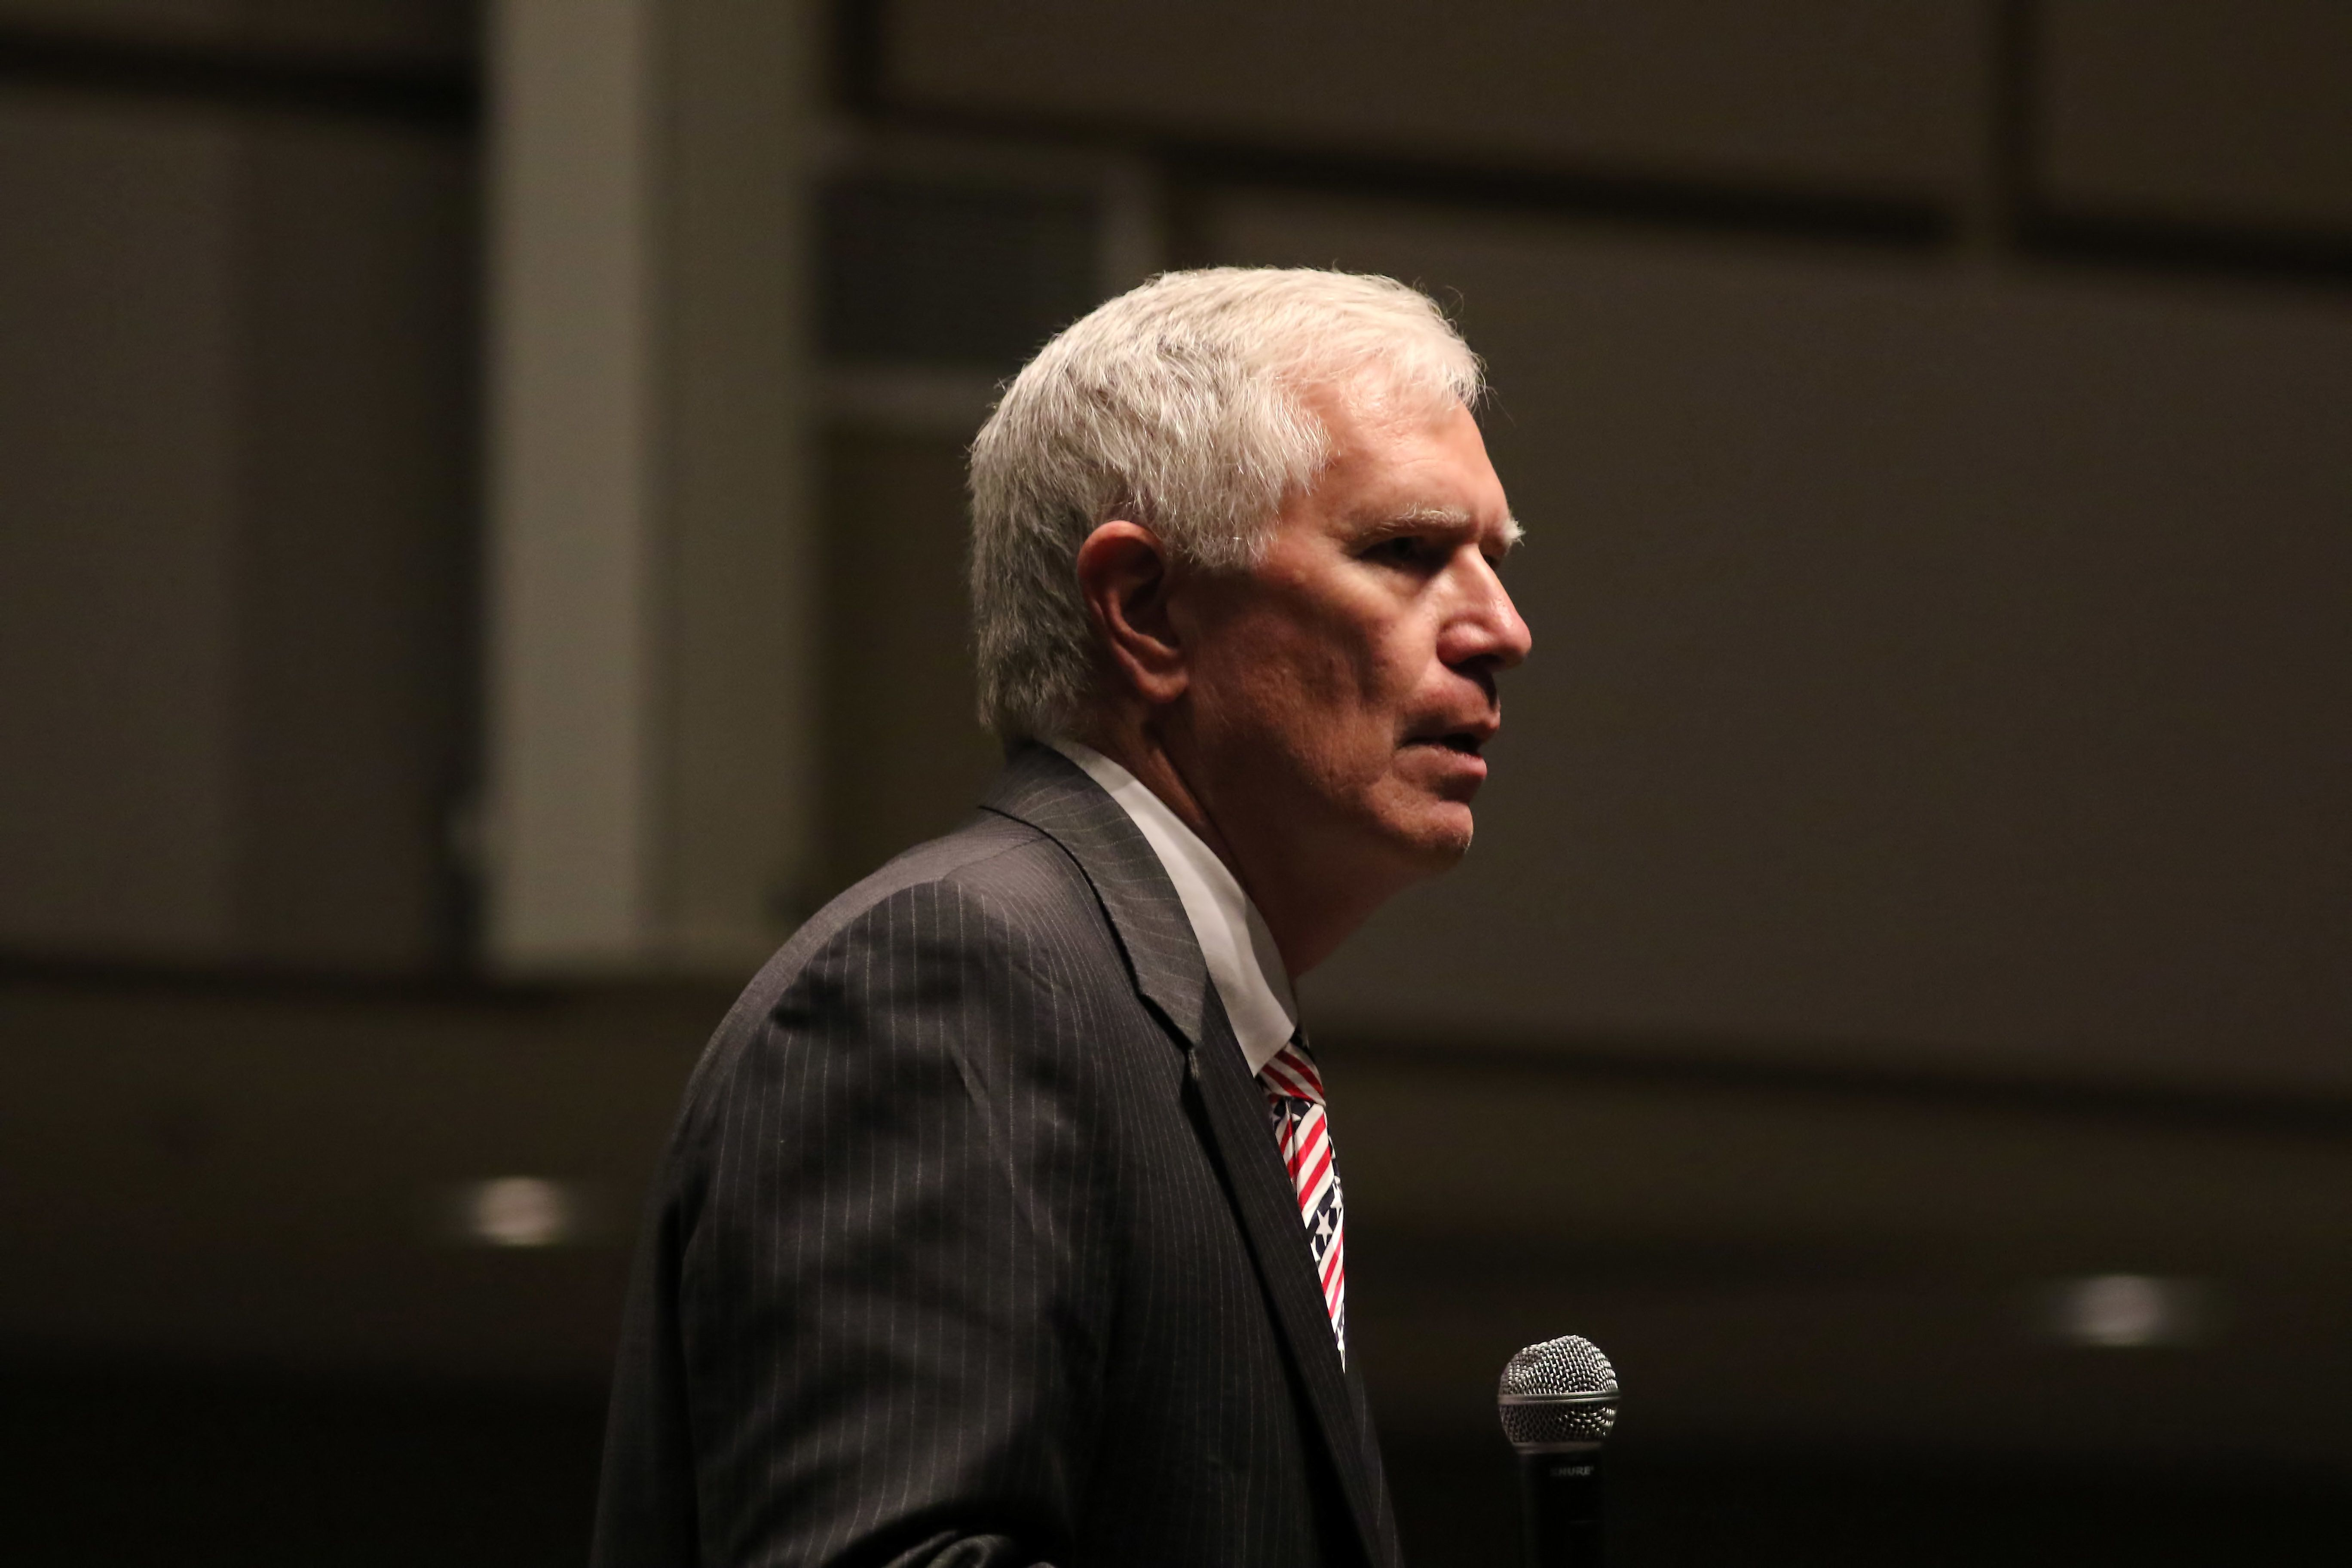 20 December 2015: Mo Brooks, an Alabama U.S. Representative, speaks at the Take Off with Ted Rally in Trussville, Alabama. This stop on the Cruz Country Christmas Tour was held at the Trussville Civic Center. (Photo by Michael Wade/Icon Sportswire) (Photo by Michael Wade/Icon Sportswire/Corbis via Getty Images)